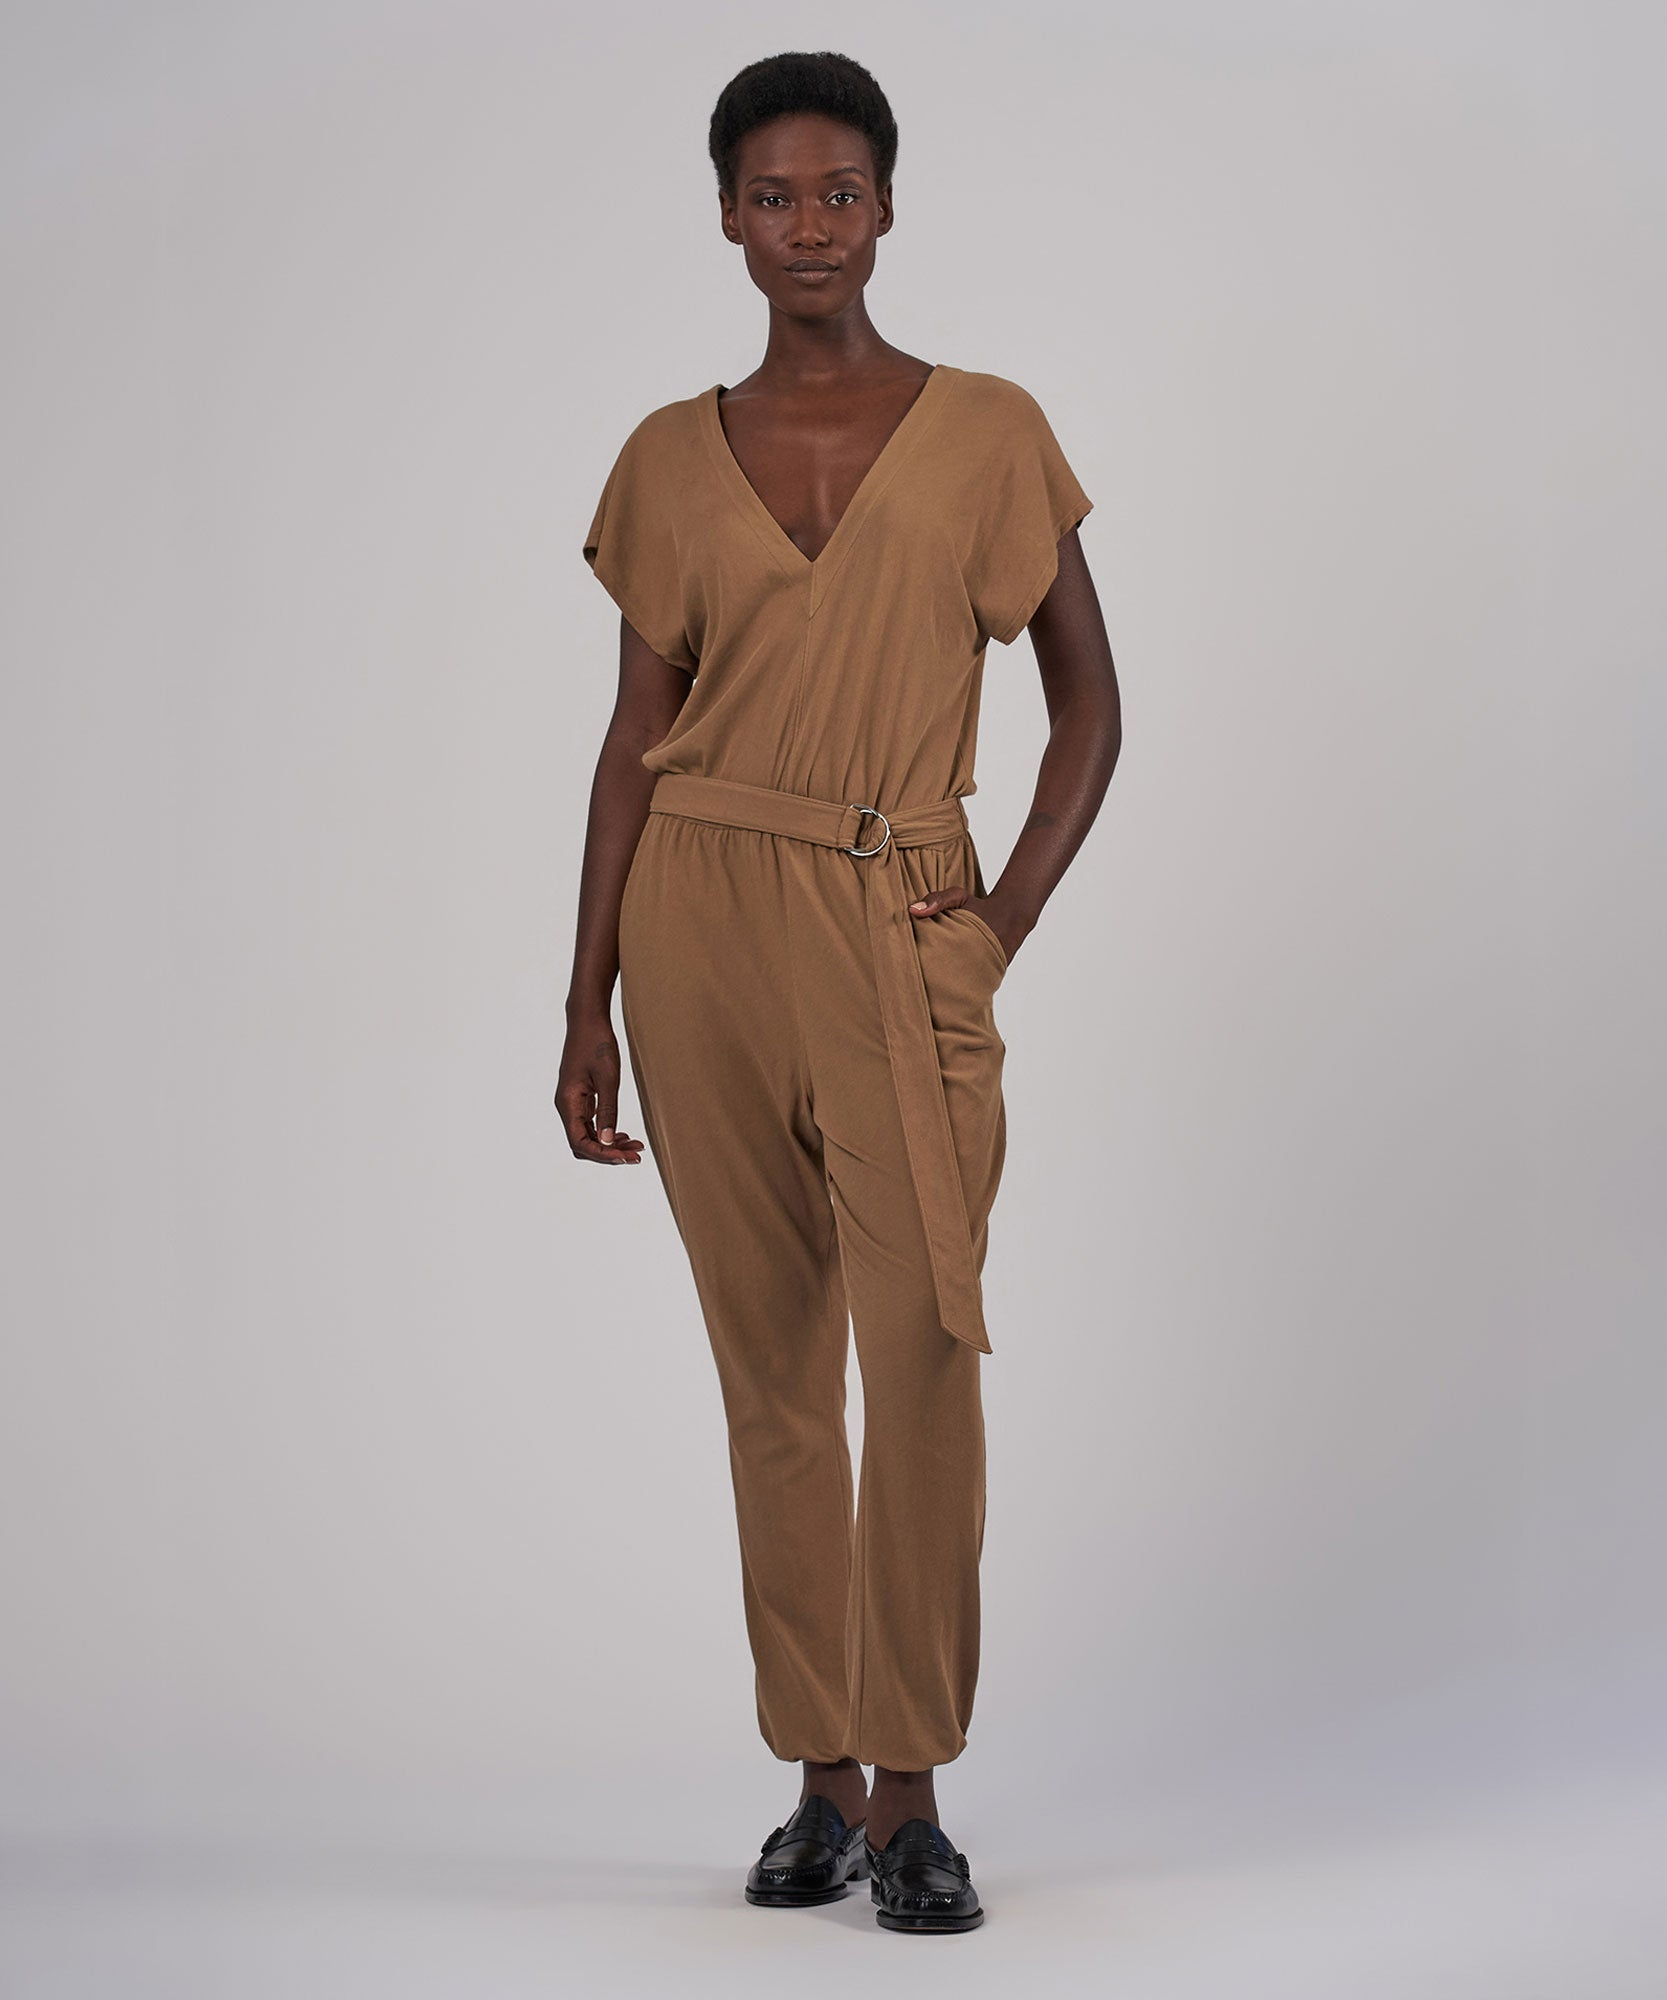 Sahara High Torsion Jumpsuit - Women's Luxe Jumpsuit by ATM Anthony Thomas Melillo